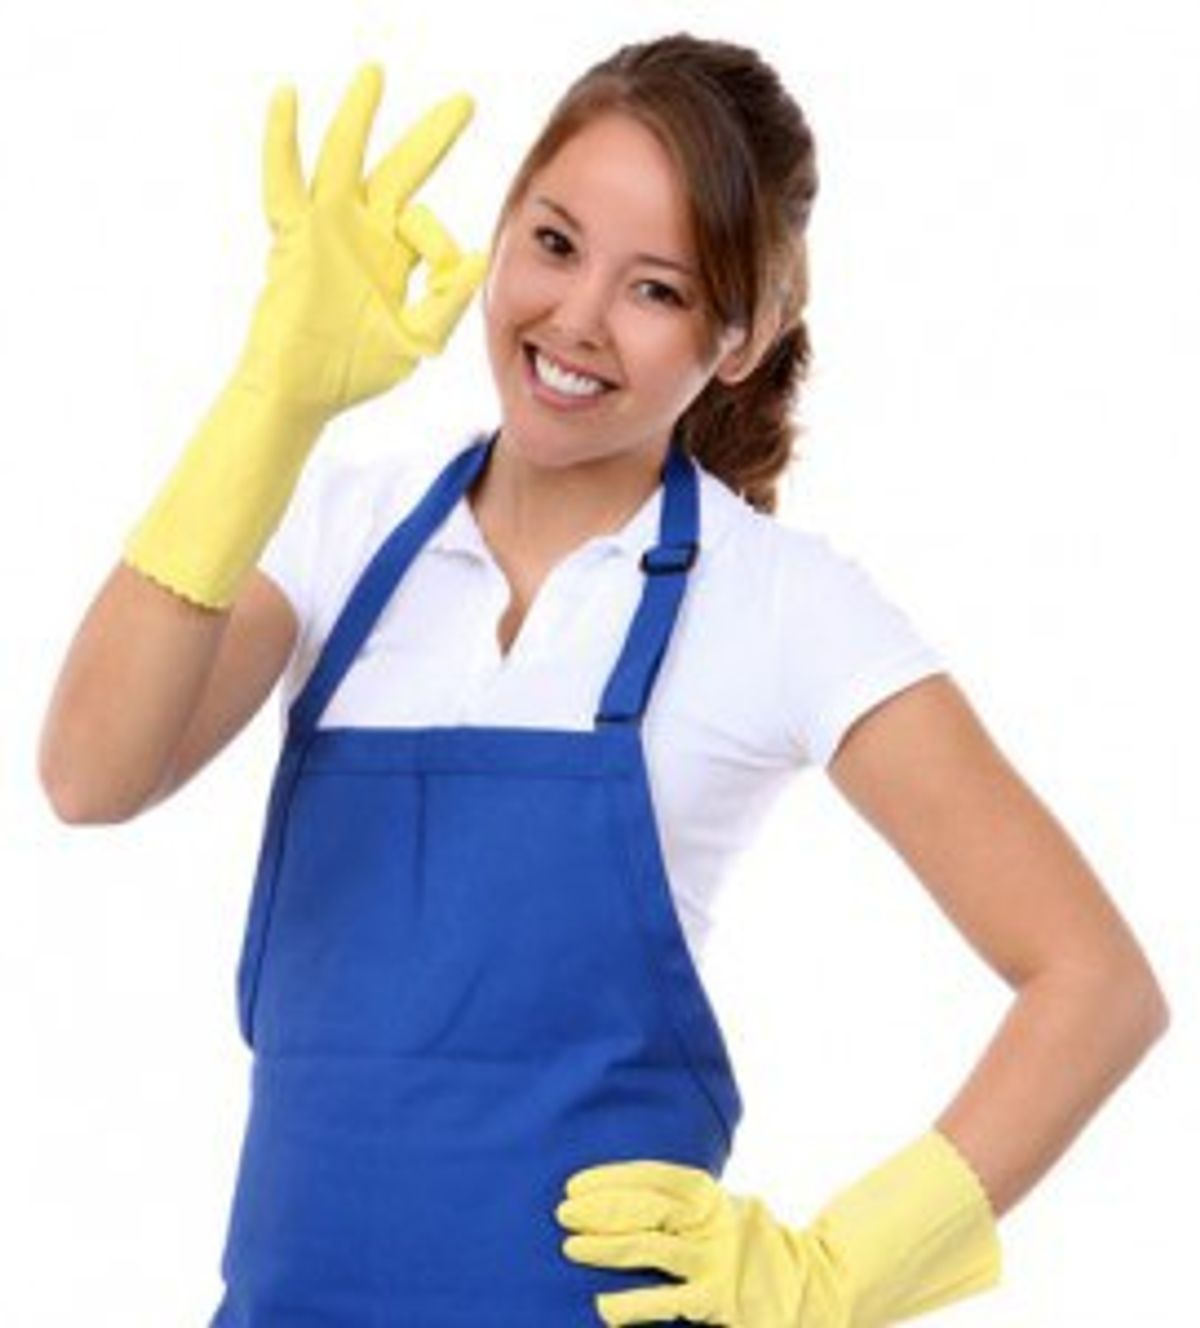 Why I'm Proud To Be A Janitor: Why You Should Never Be Ashamed Of Your Service Job